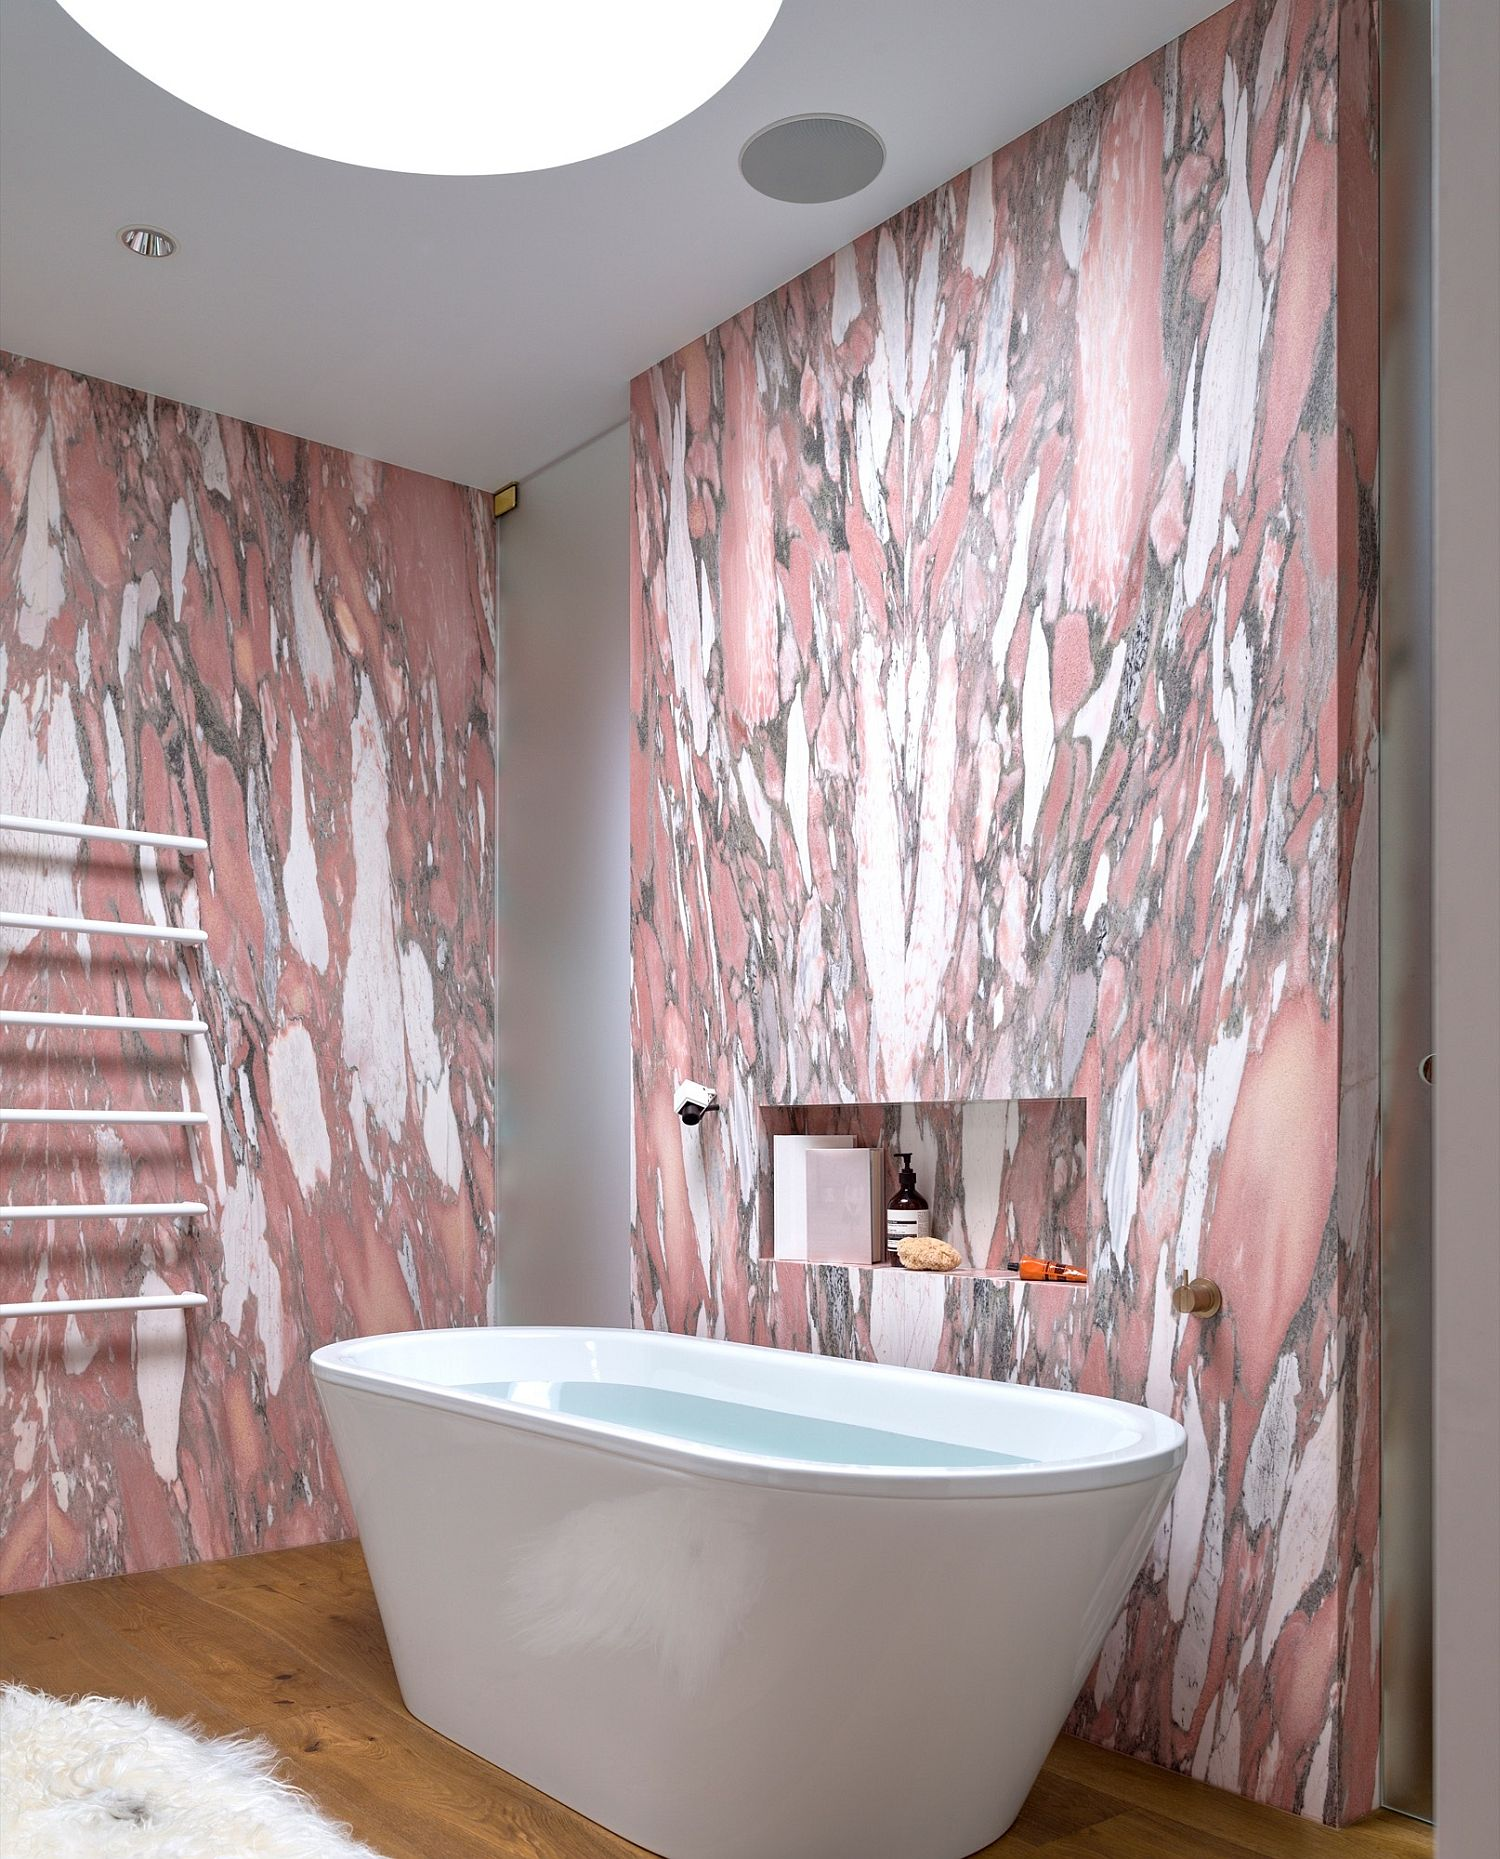 Skylight-bring-natural-light-into-the-bathroom-with-pink